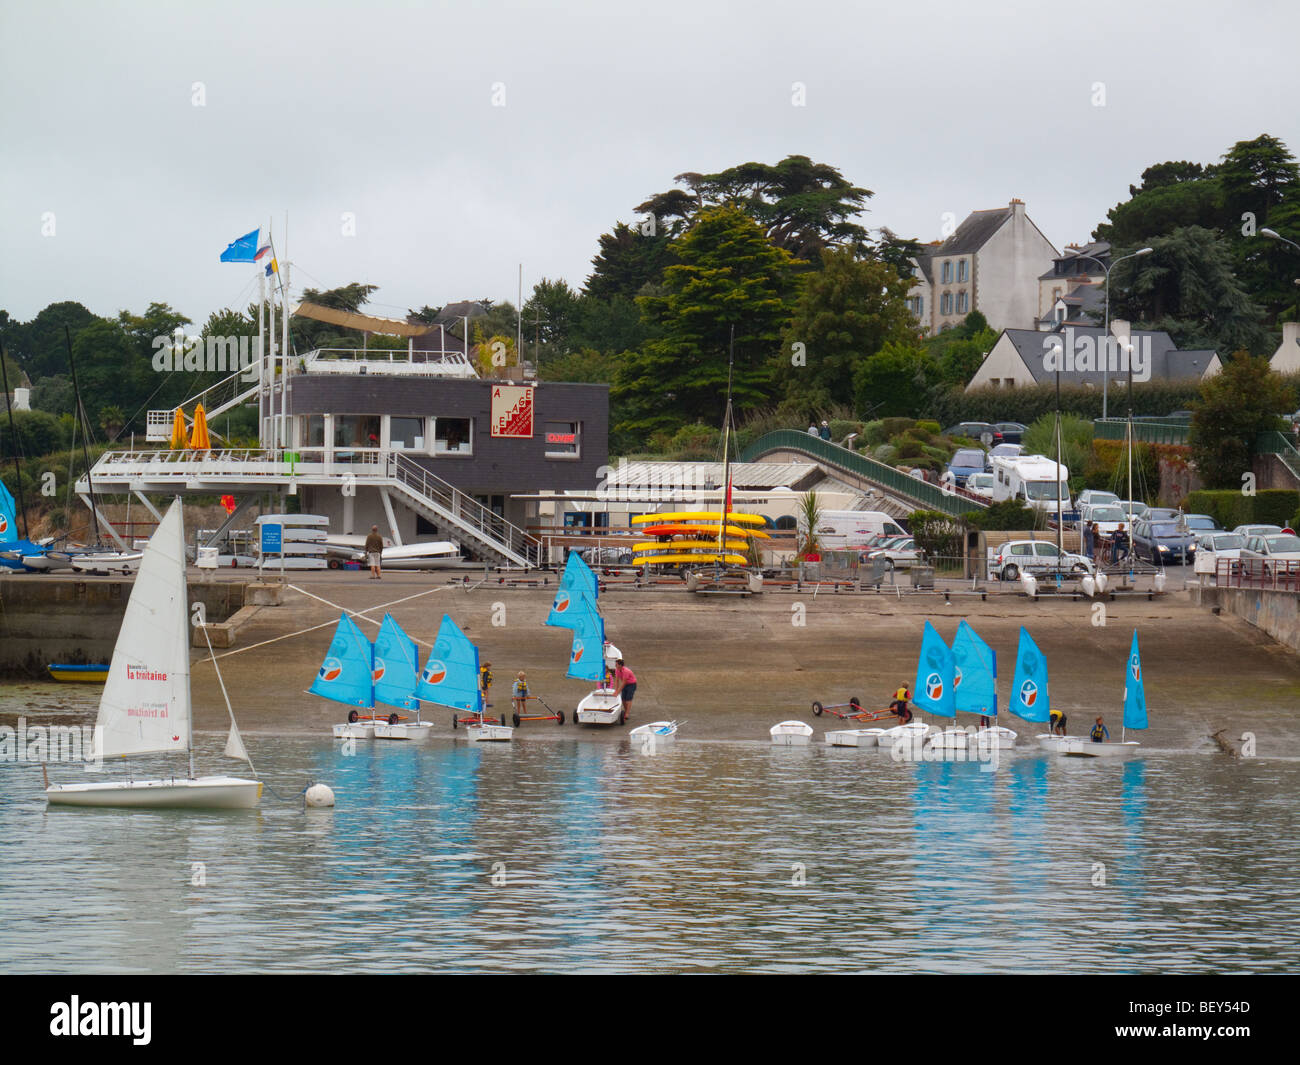 Sailing school at La Trinite Sur Mer, Brittany, France - Stock Image